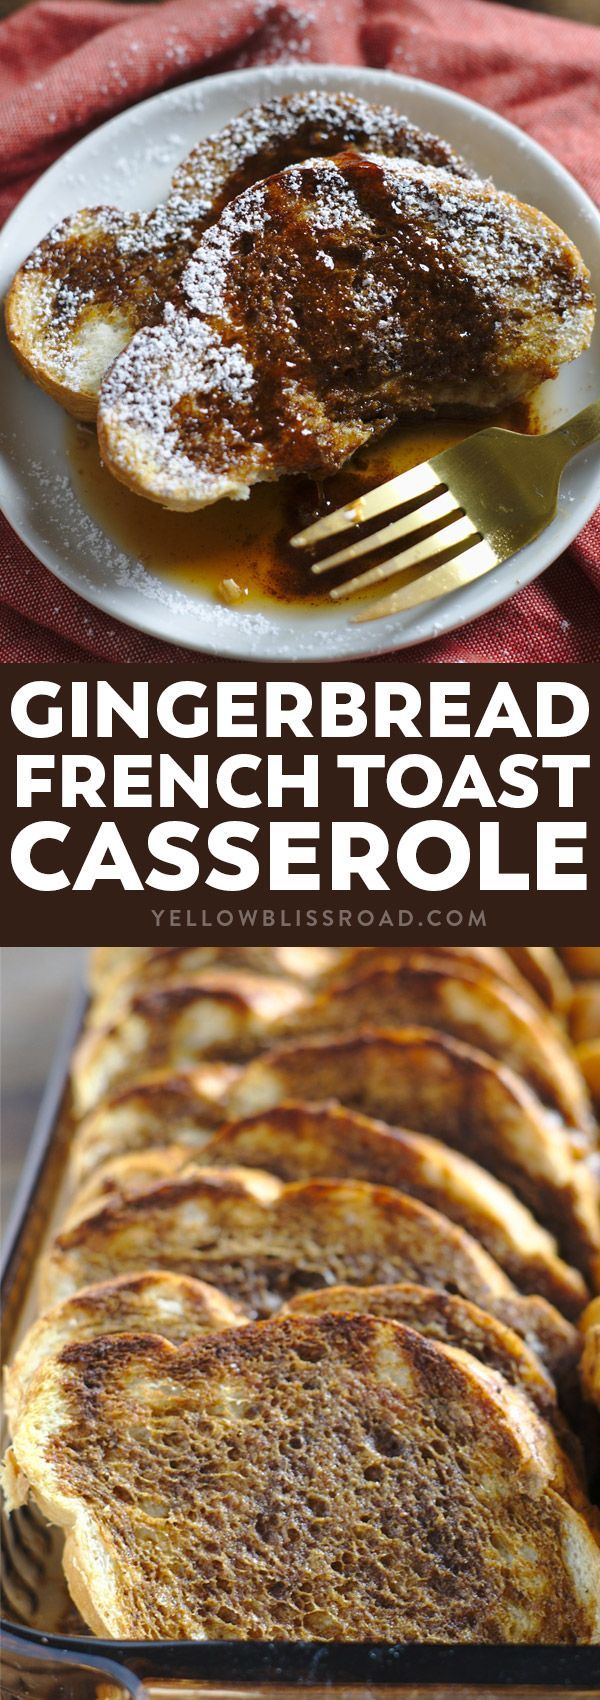 Gingerbread French Toast Casserole Recipe- An easy breakfast idea perfect for feeding a crowd on Christmas morning. It's a dish the whole family will love!